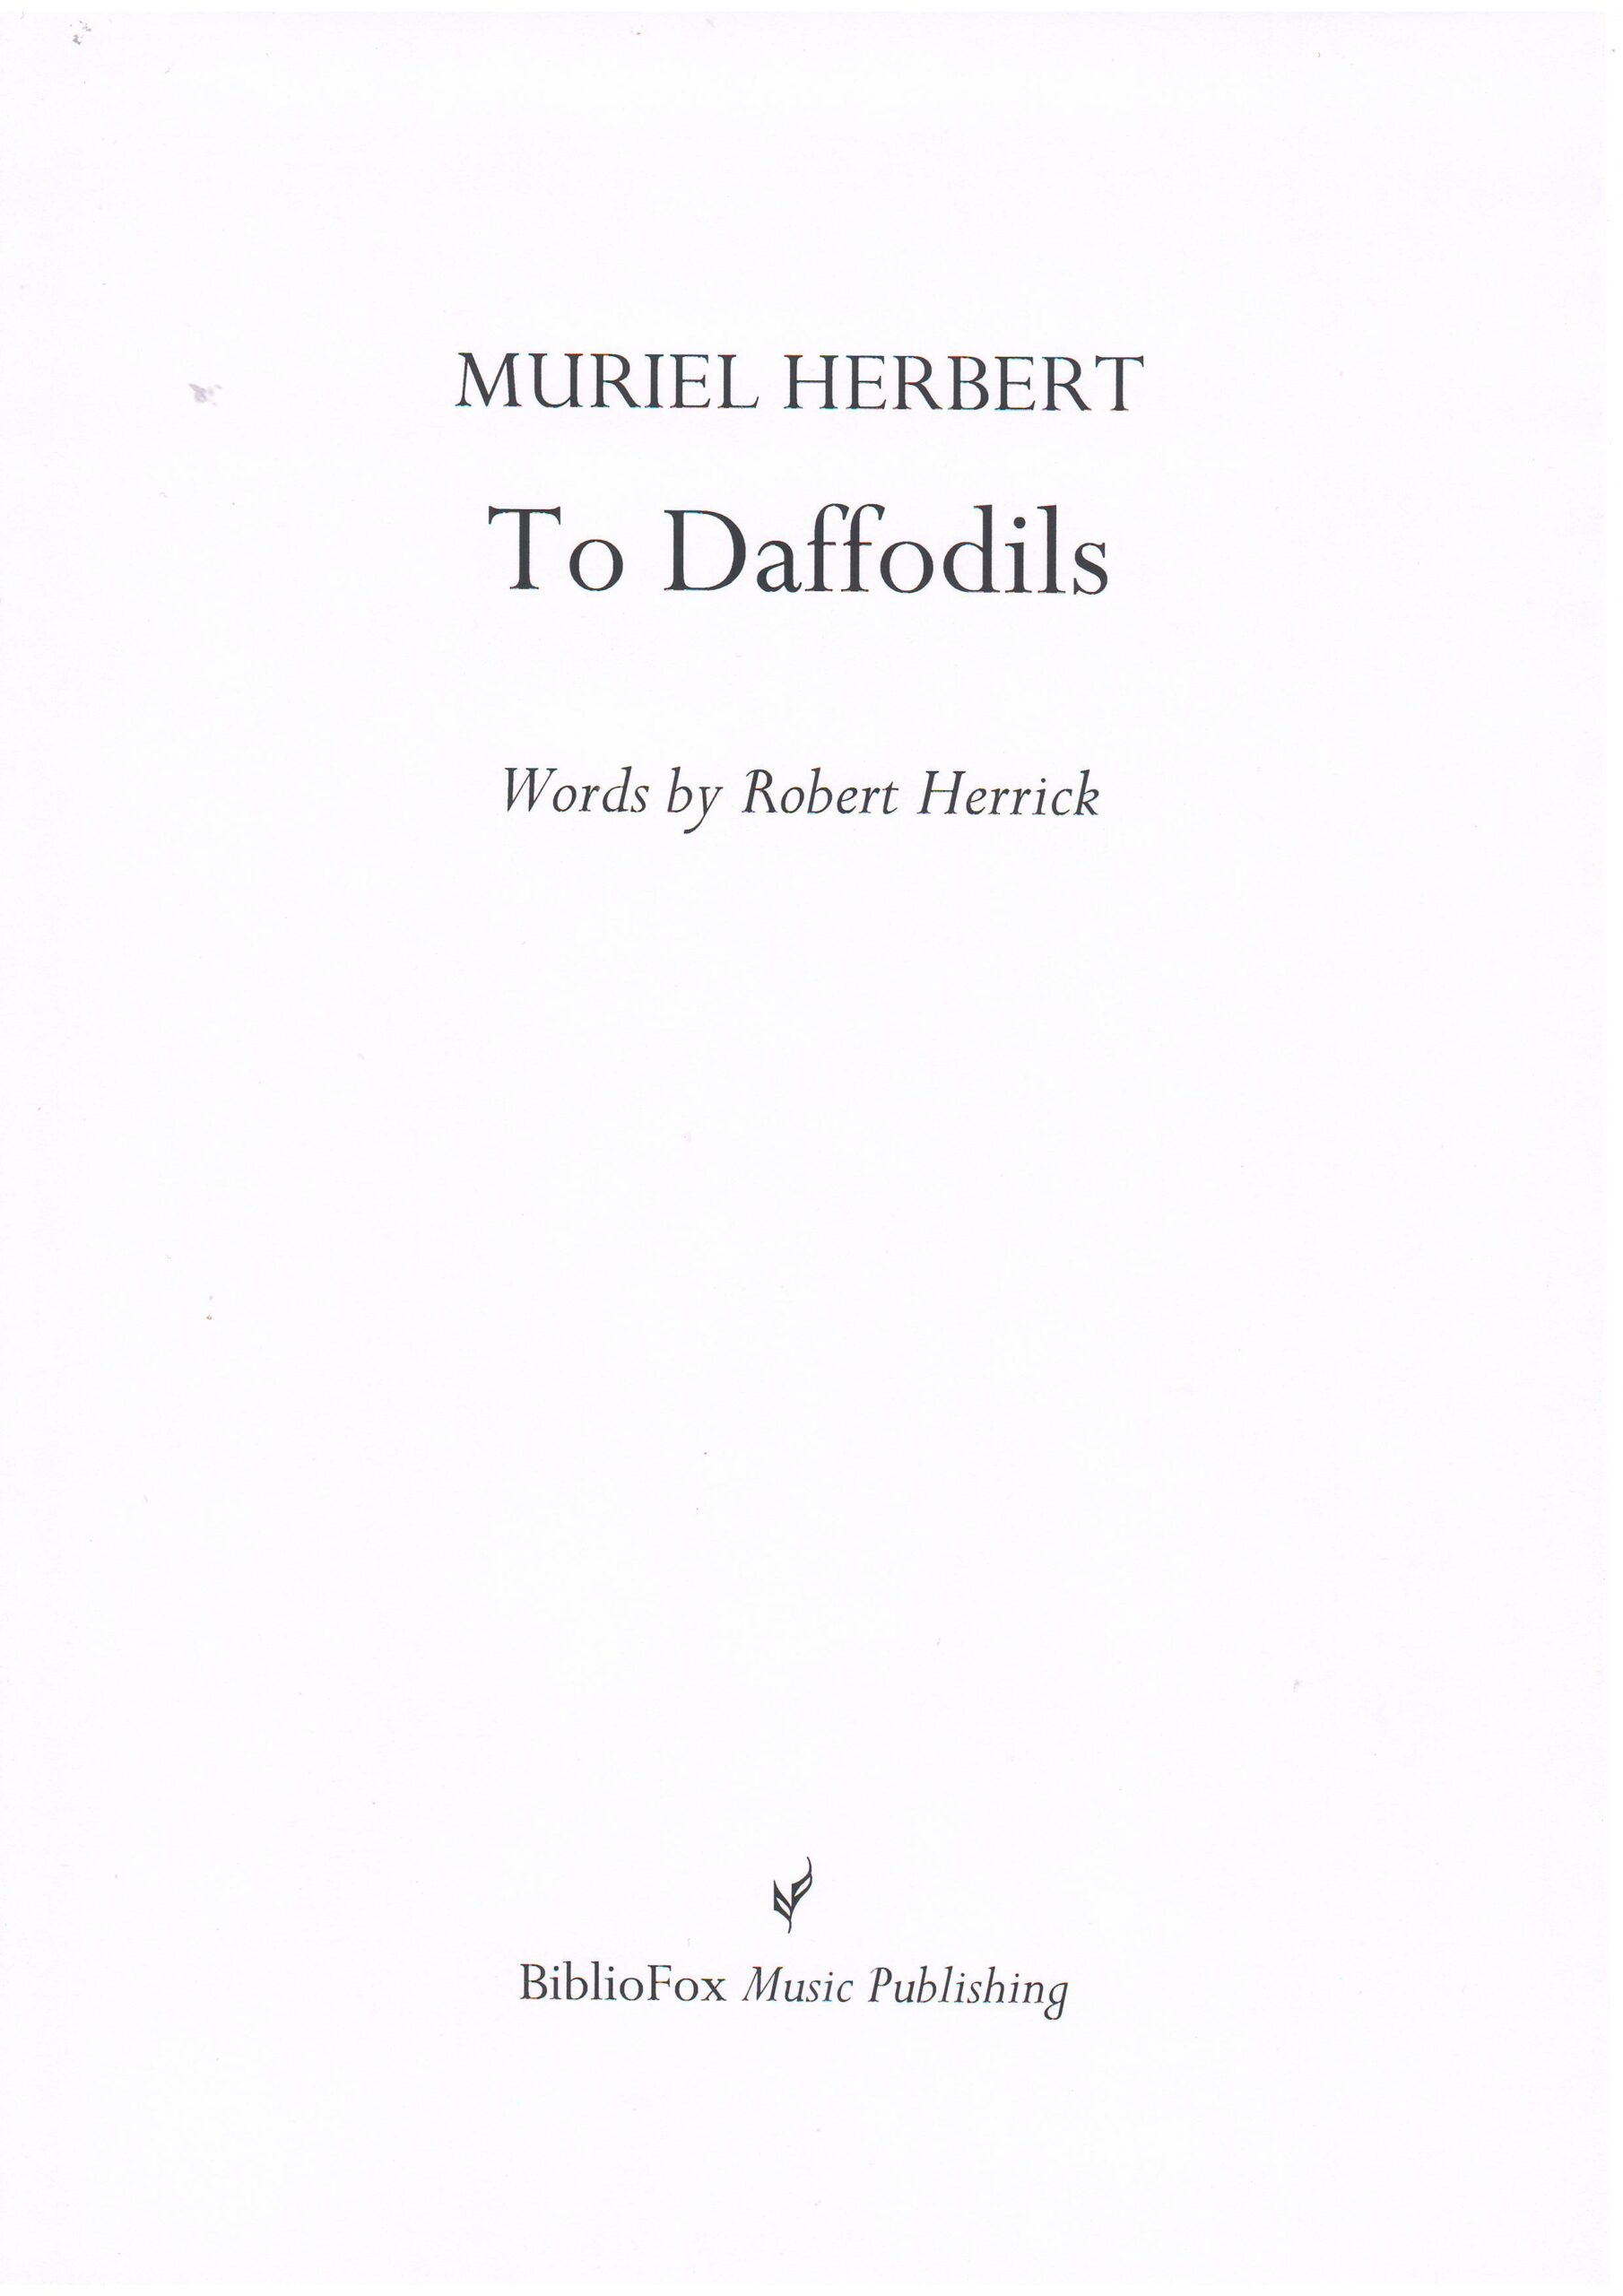 Cover page of Herbert To Daffodils